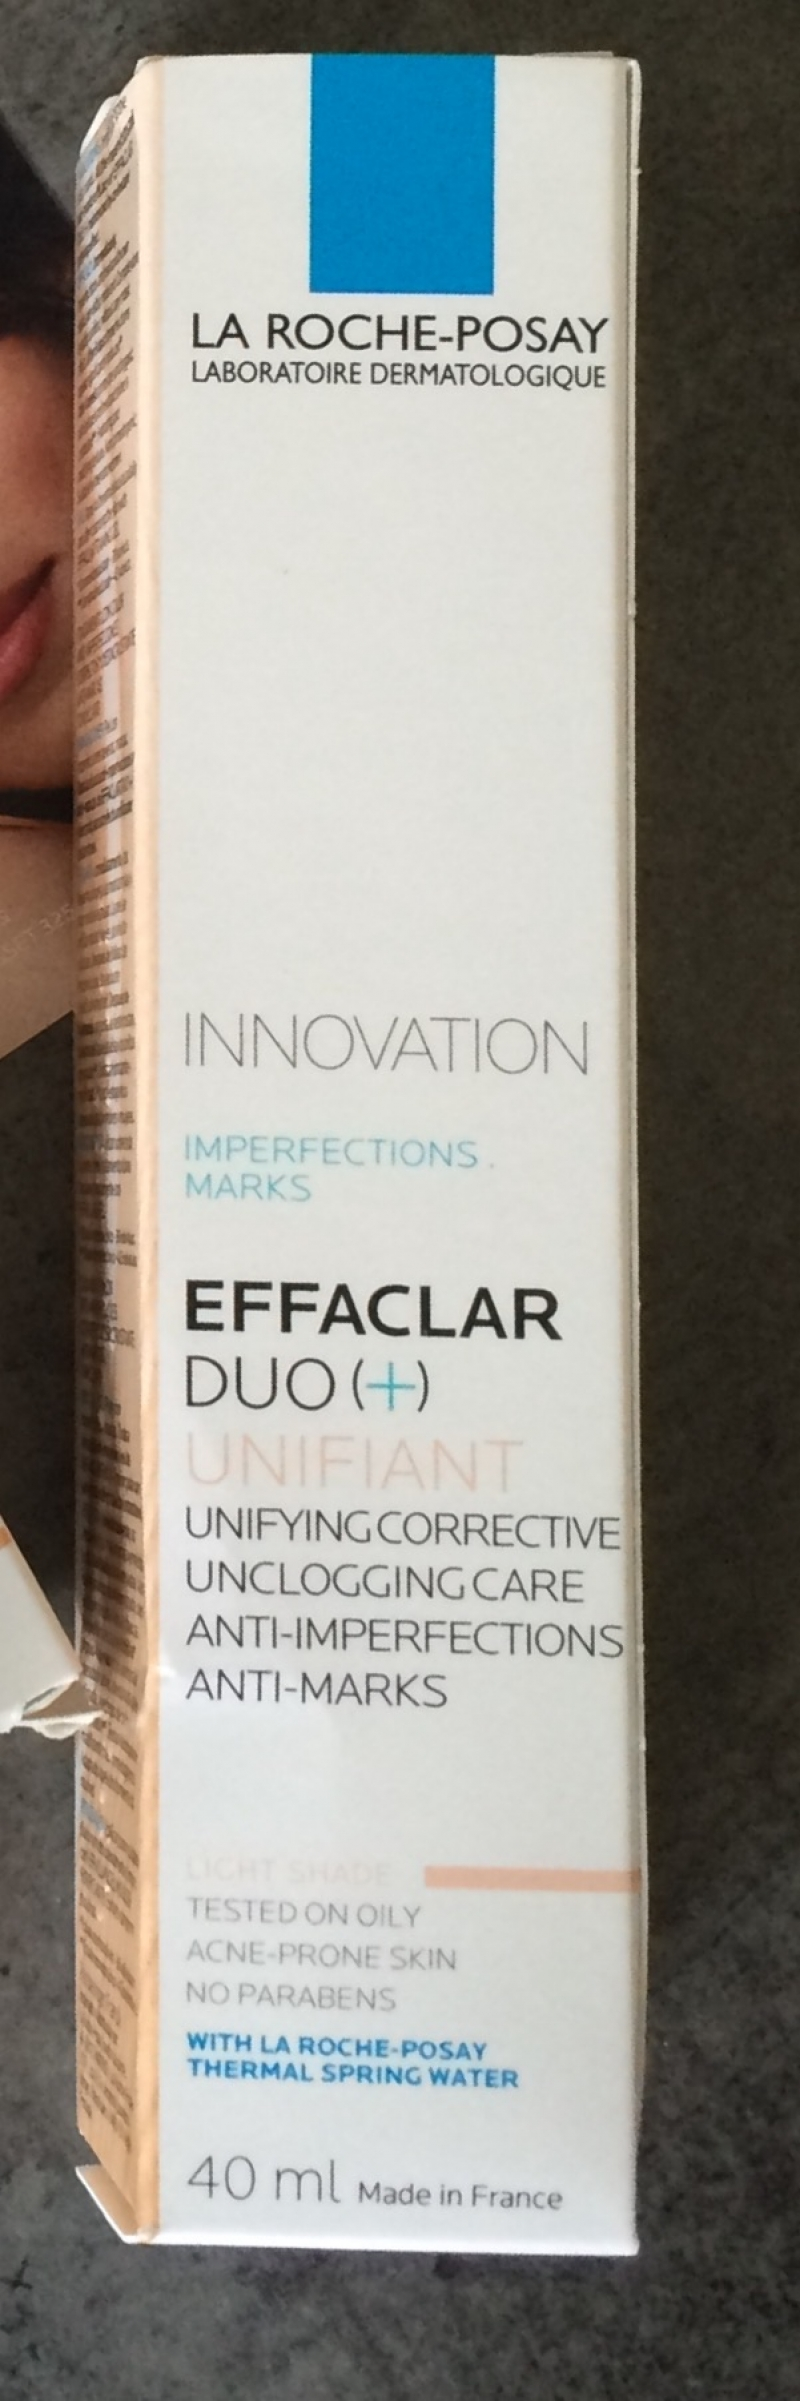 Swatch Effaclar Duo (plus) Unifiant, La Roche-Posay